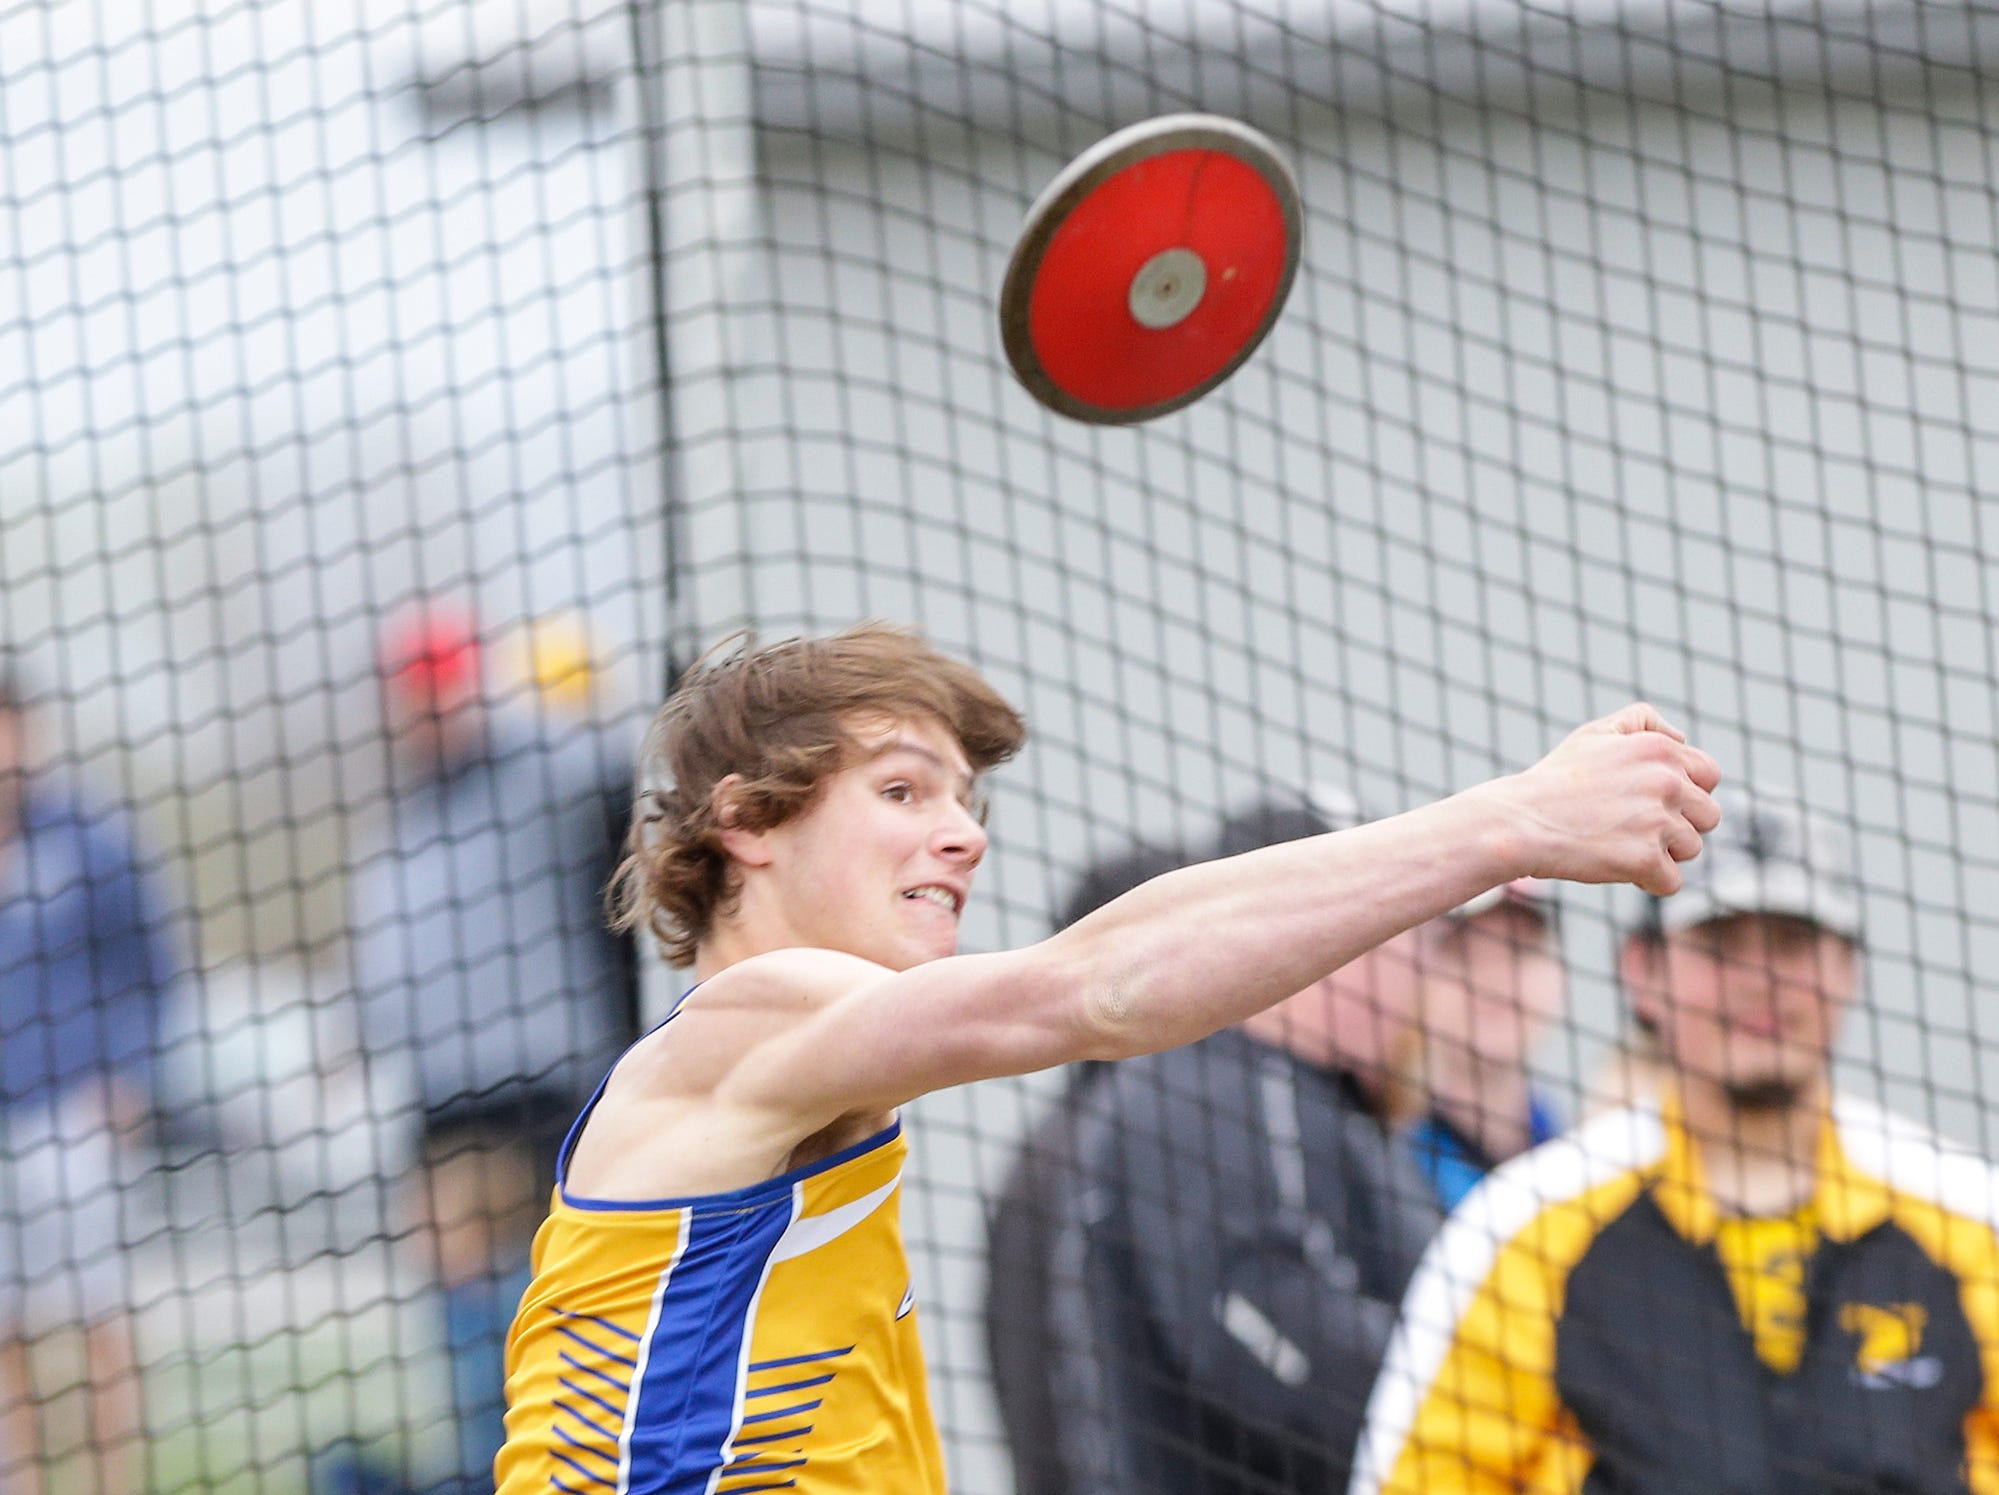 Dylan Homuth of Campbellsport High School competes in the discus throw Friday, May 3, 2019 at the Waupun High School Invitational track and field meet. Doug Raflik/USA TODAY NETWORK-Wisconsin